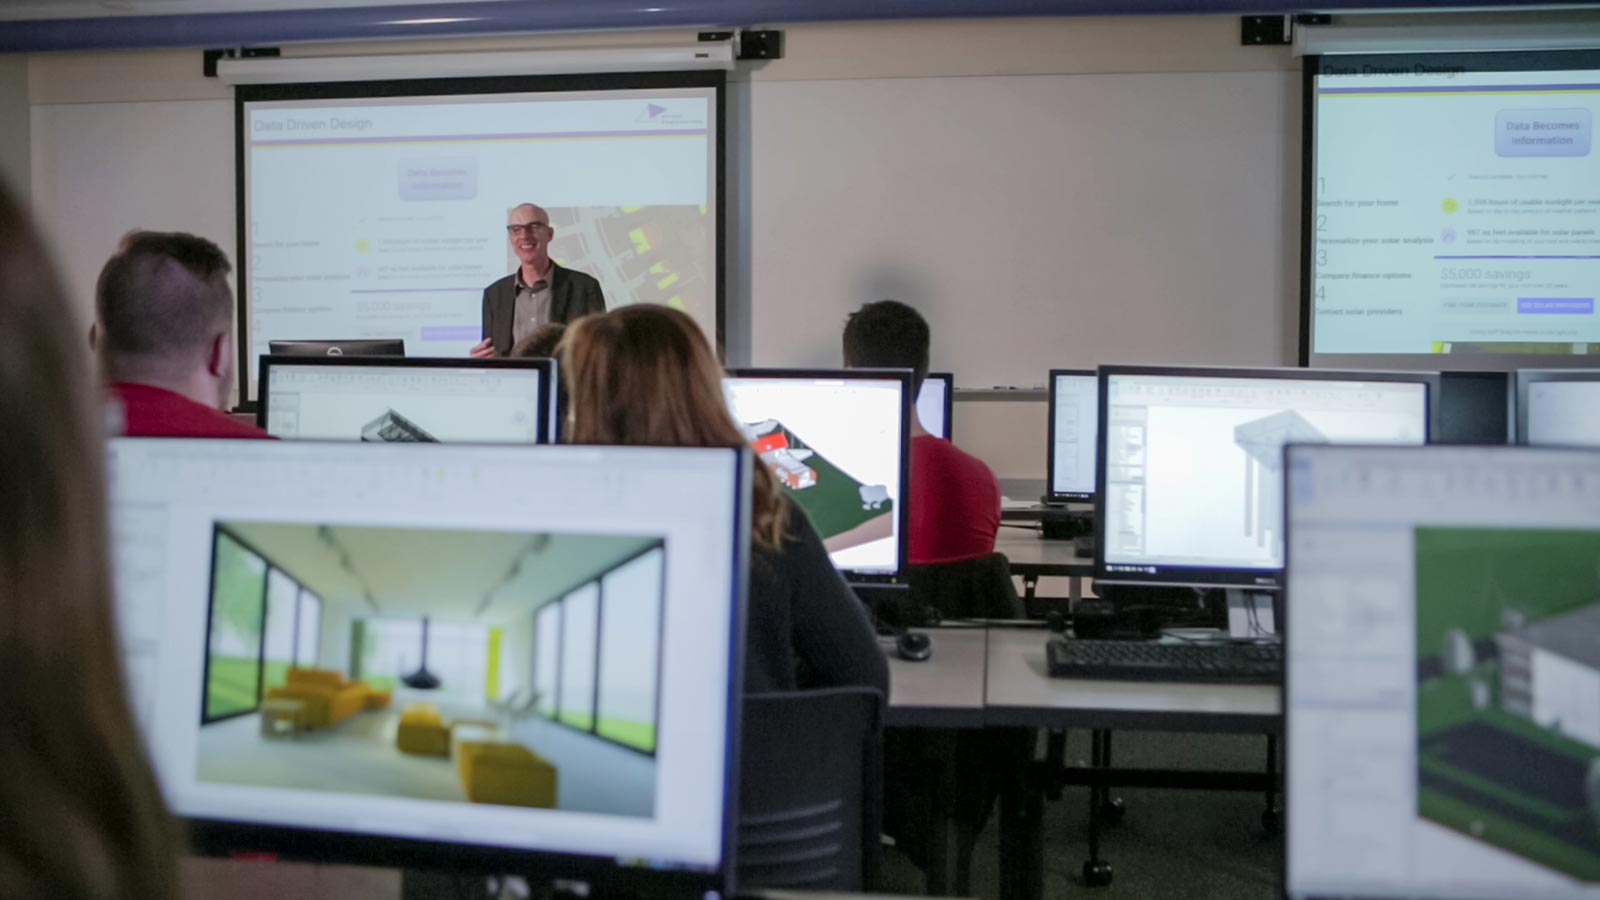 An instructor stands in front of a classroom with students sitting in front of computer screens.